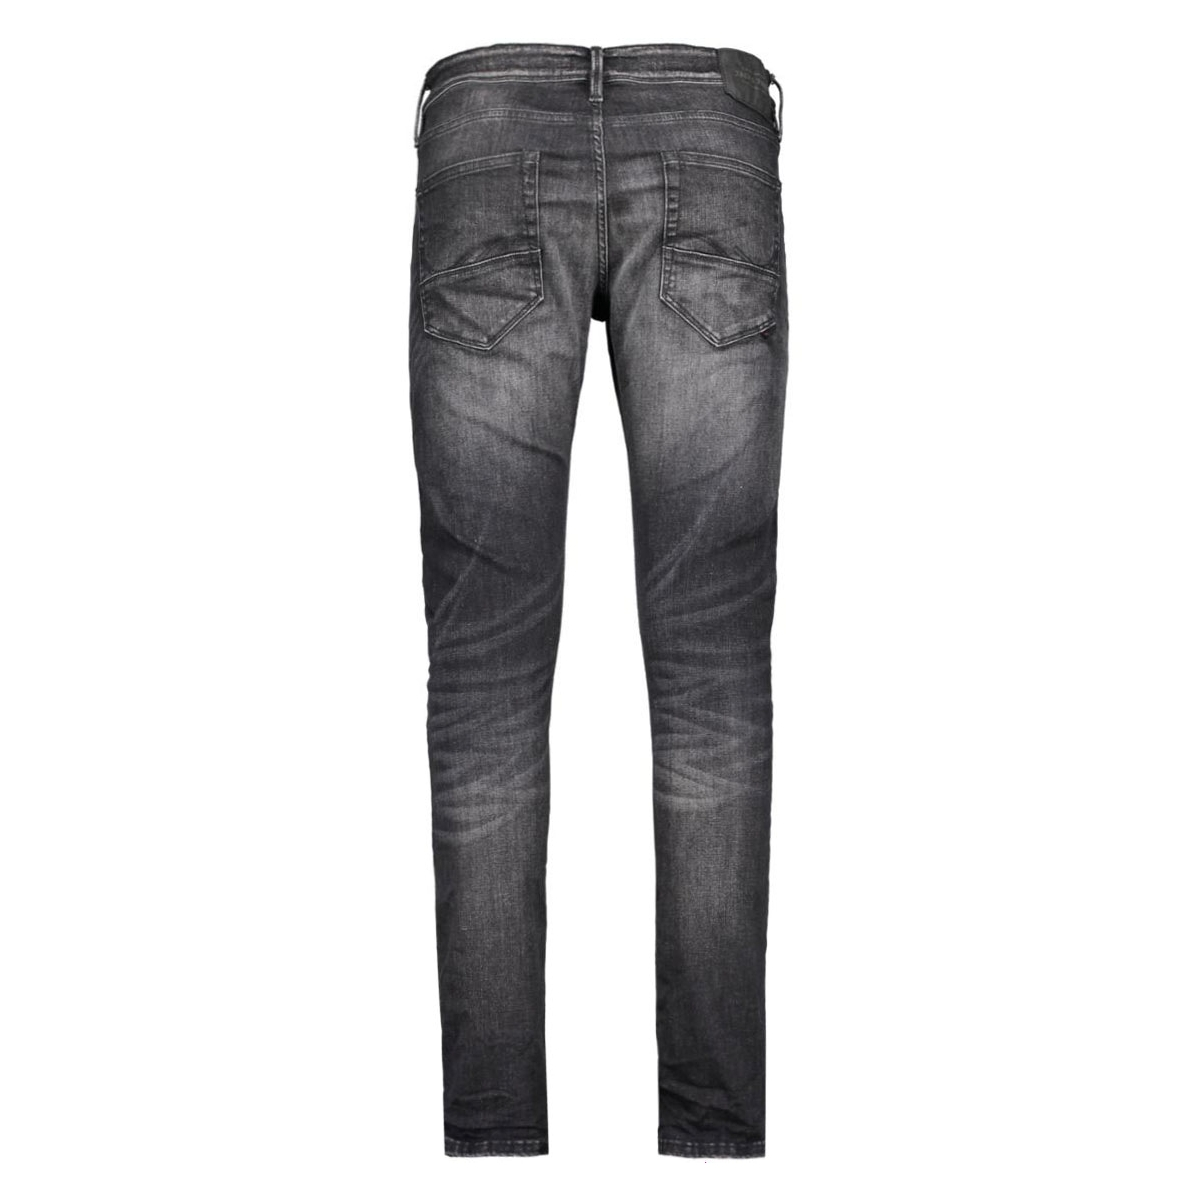 jjiglenn jjfox bl 655 50sps noos 12111026 jack & jones jeans black denim